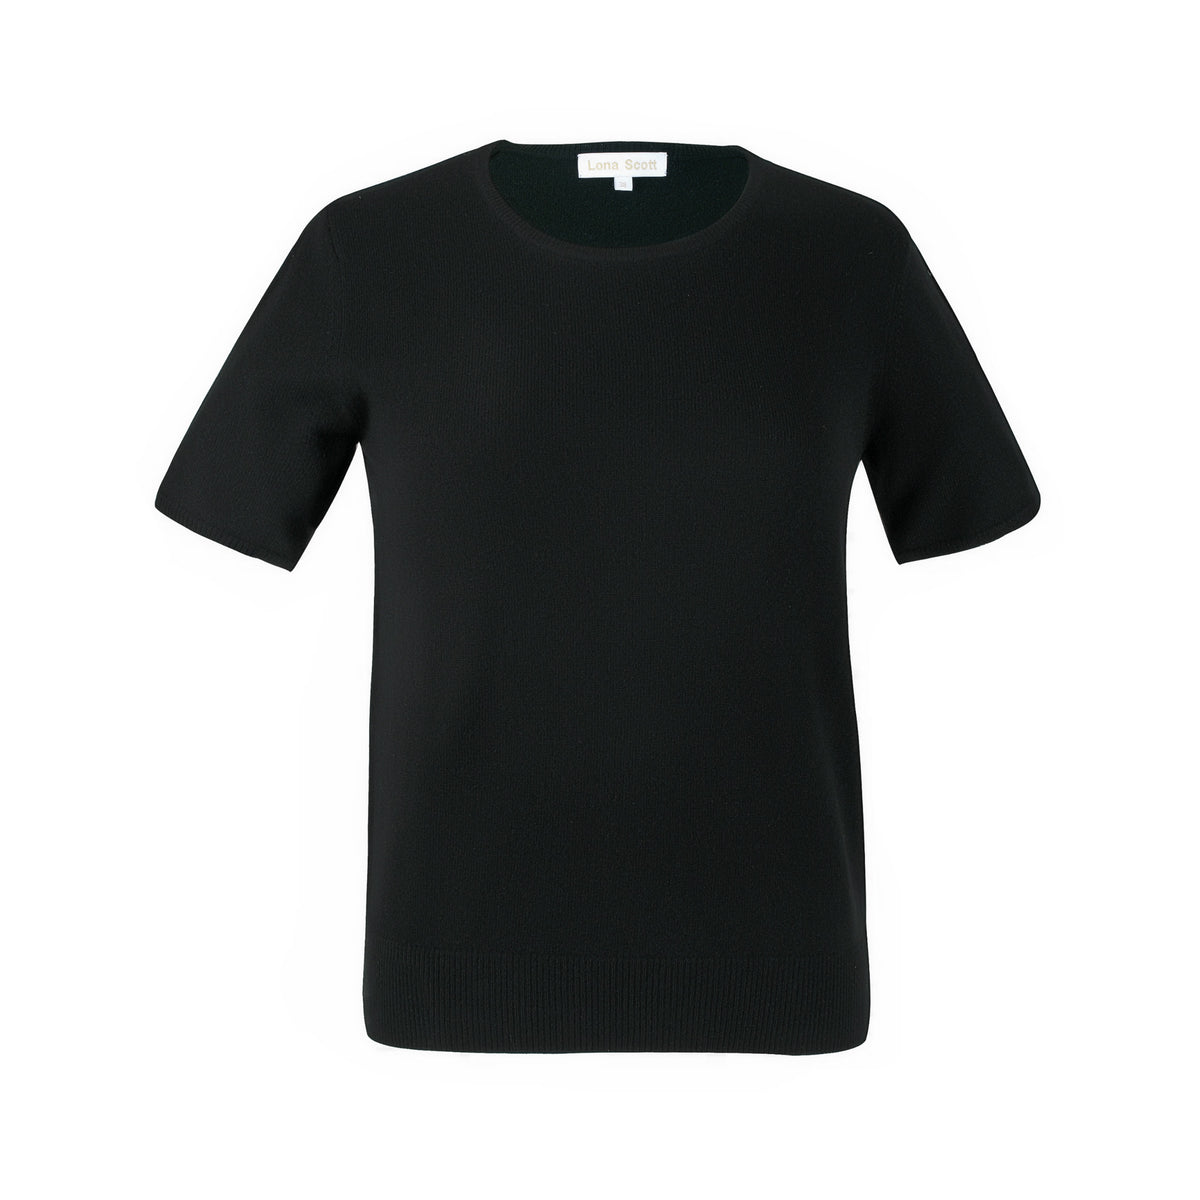 Ladies Black Cashmere Sweater | Short Sleeve | The Cashmere Choice London